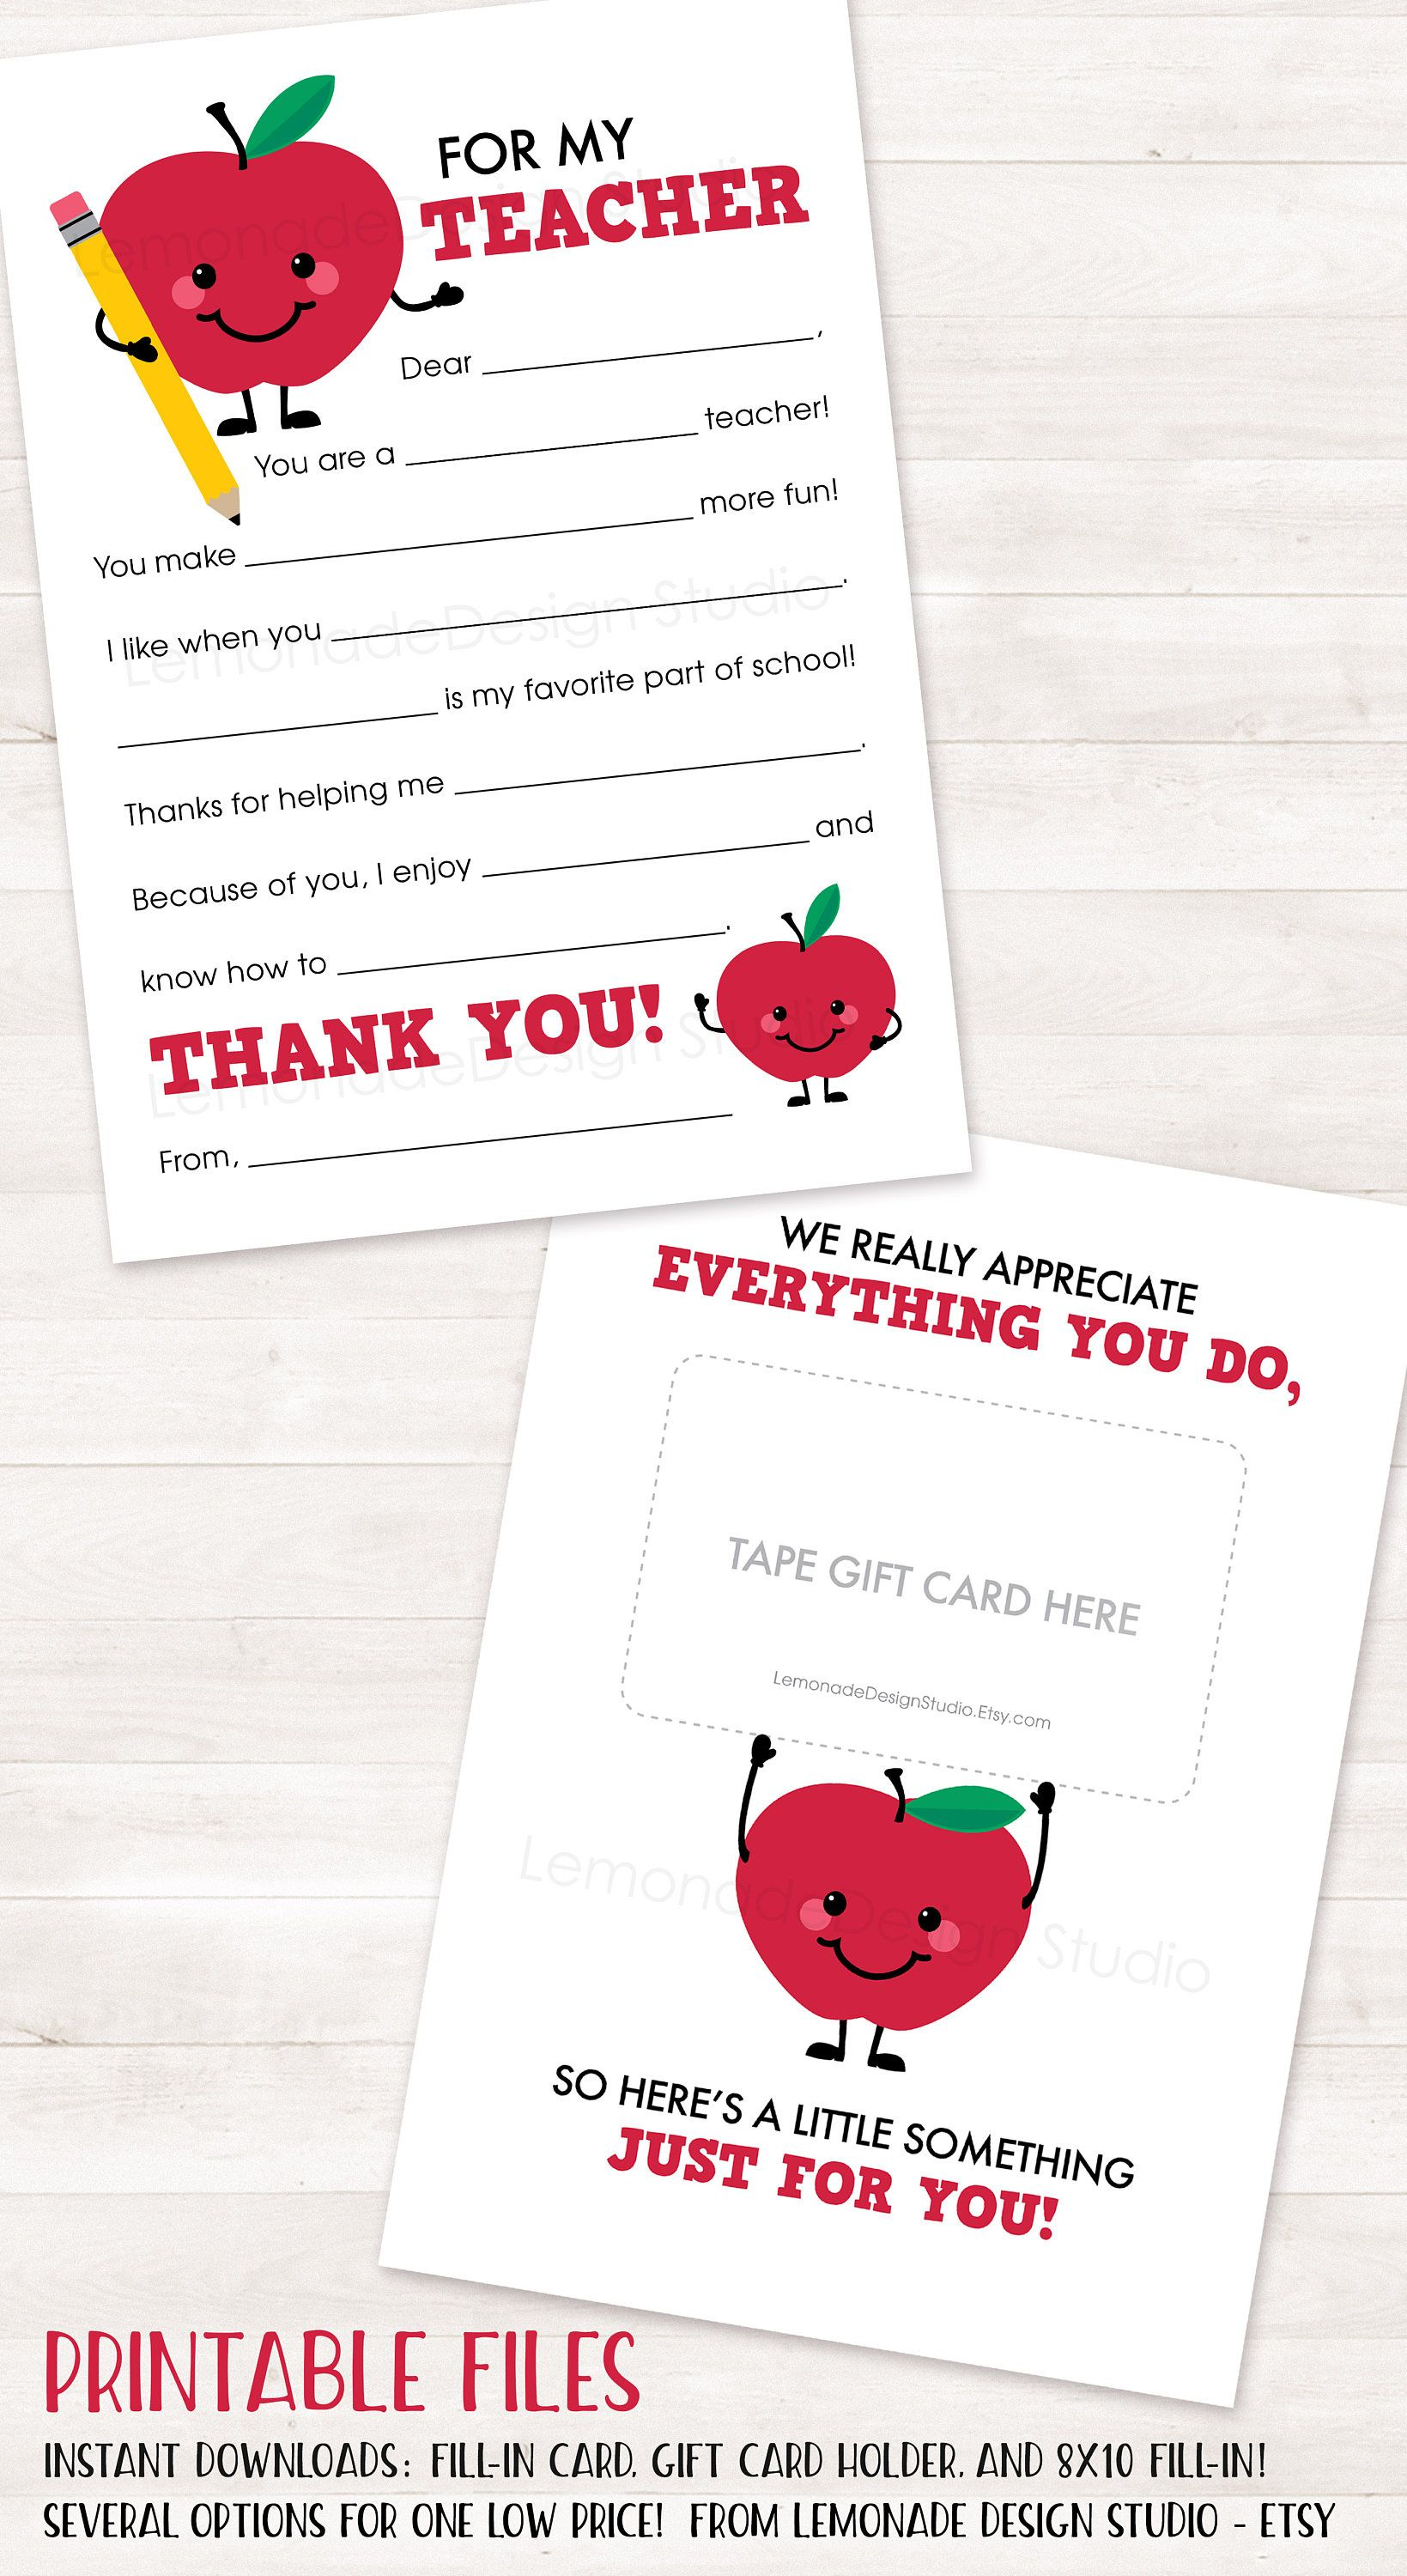 Old Fashioned image throughout thank you teacher printable